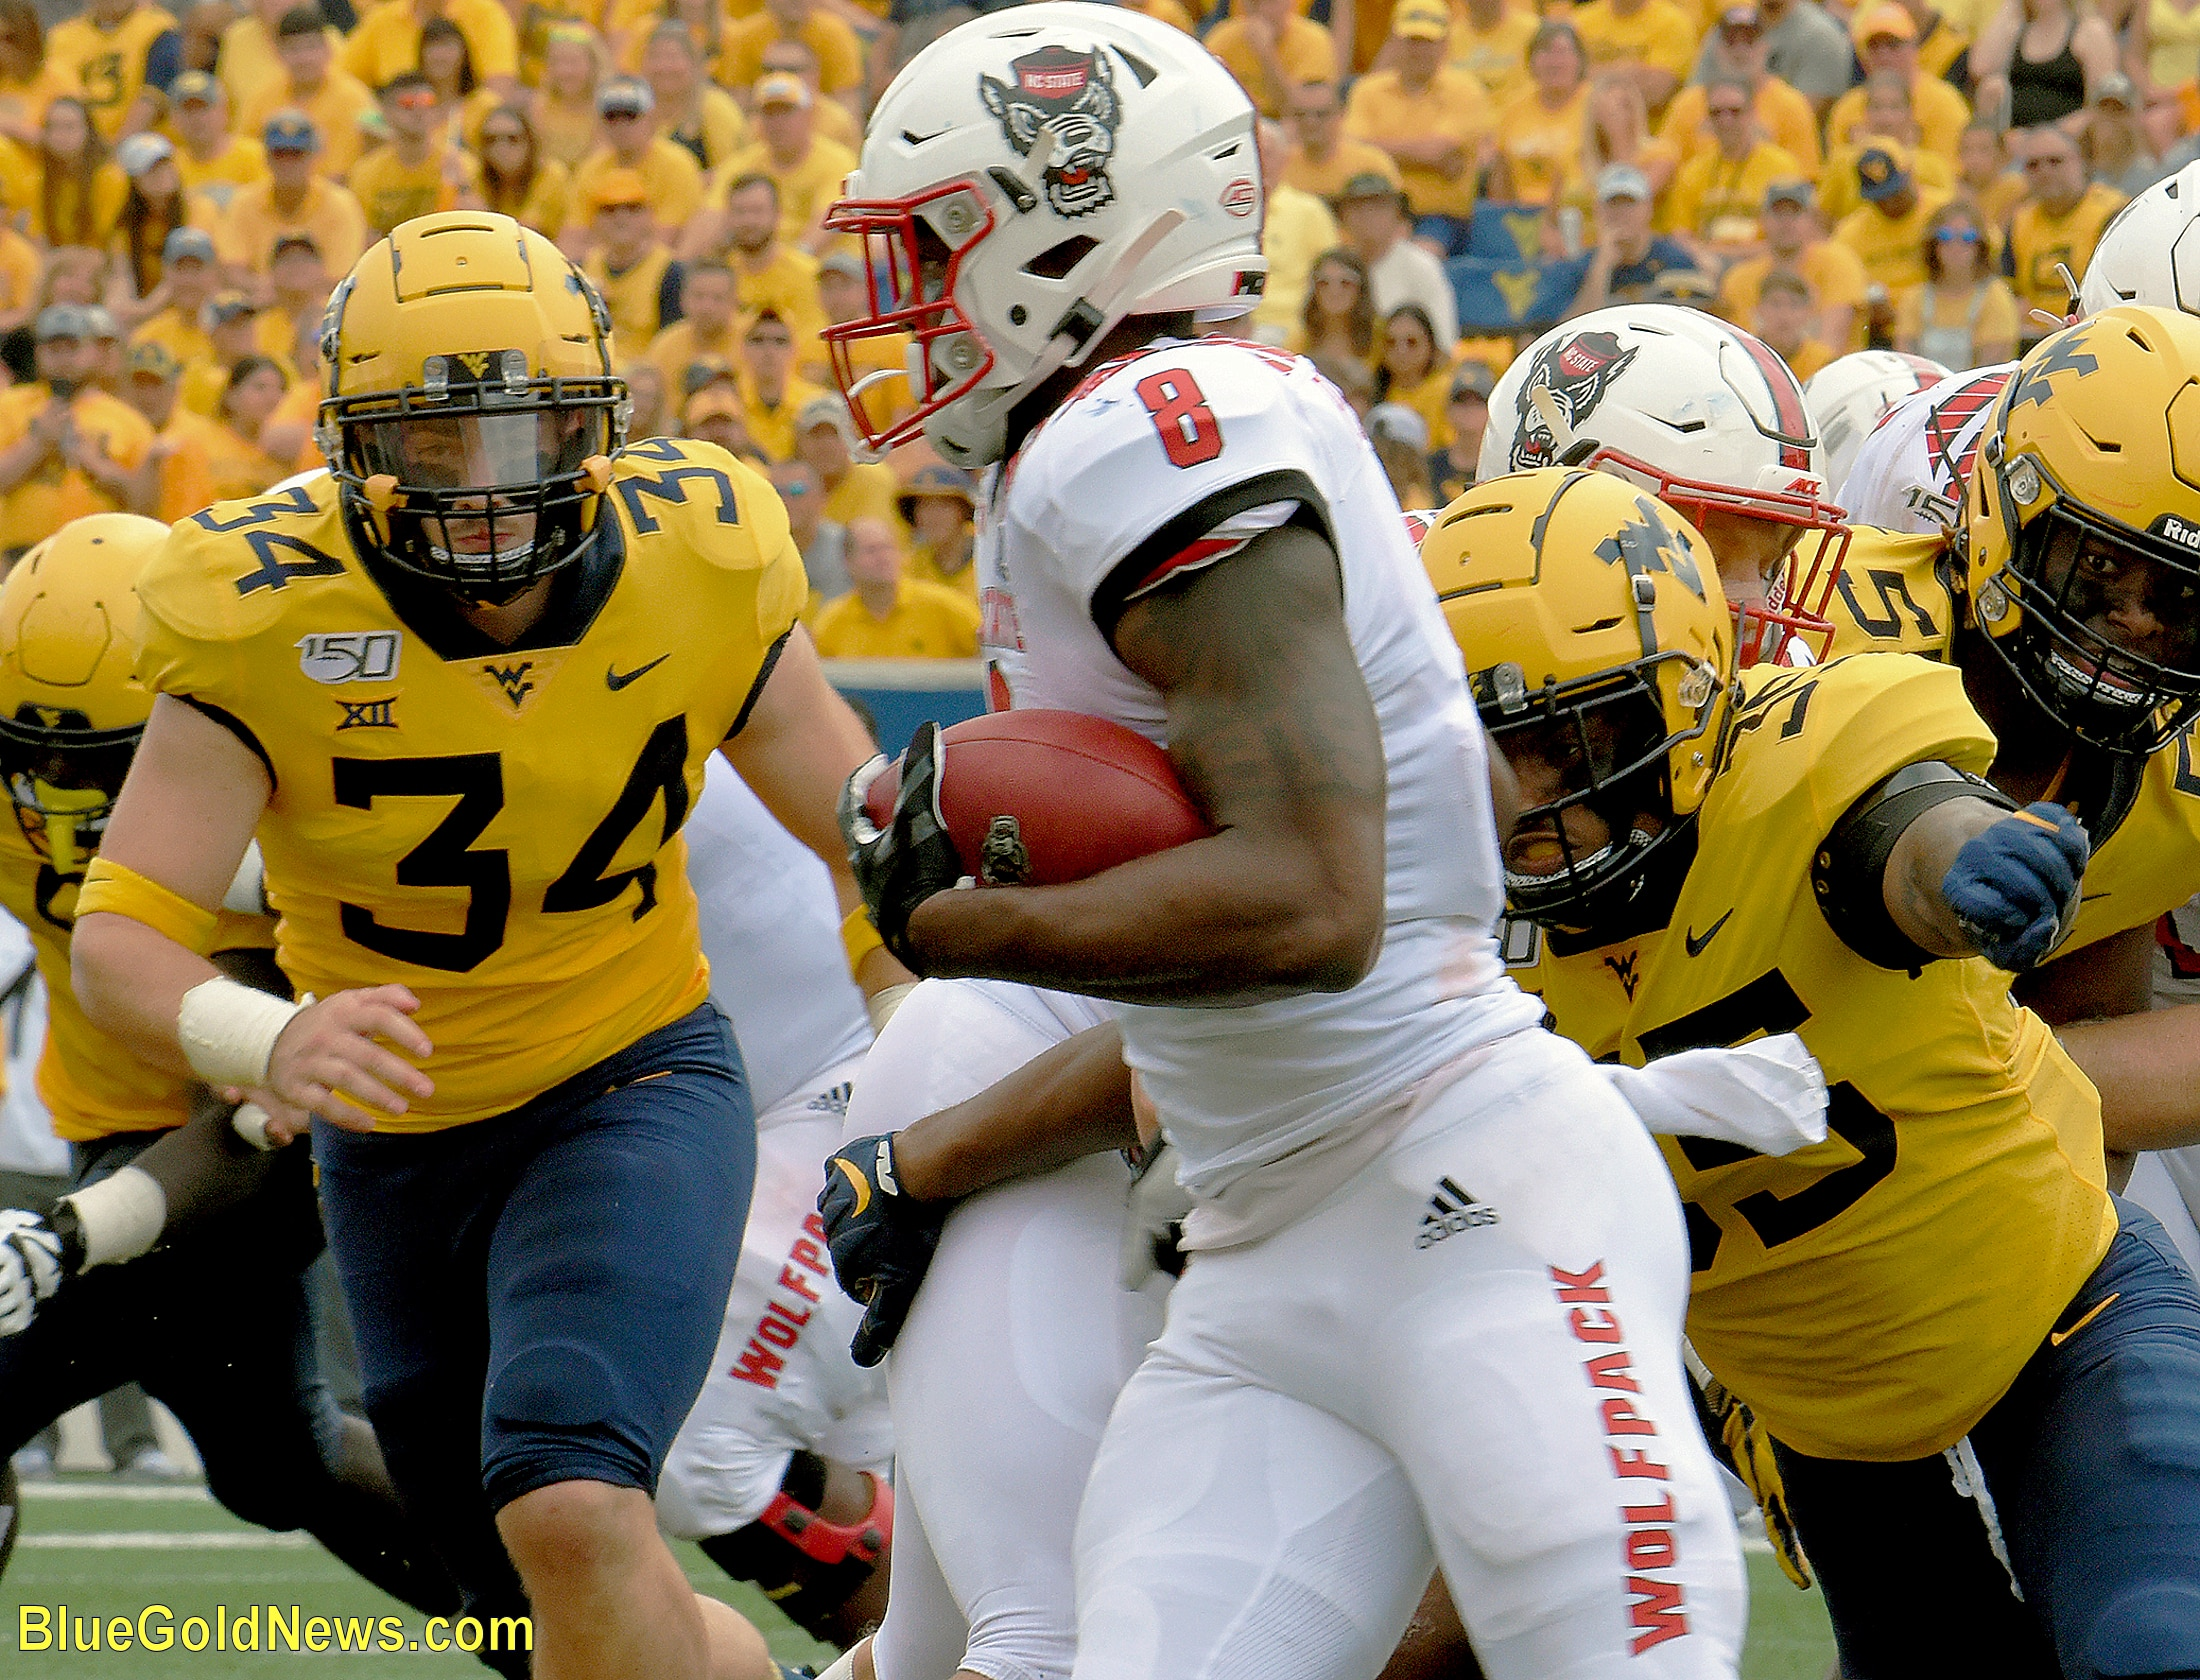 West Virginia linebacker Shea Campbell (34) zeroes in on N.C. State's Ricky Person (8) as Josh Chandler (35) pursues